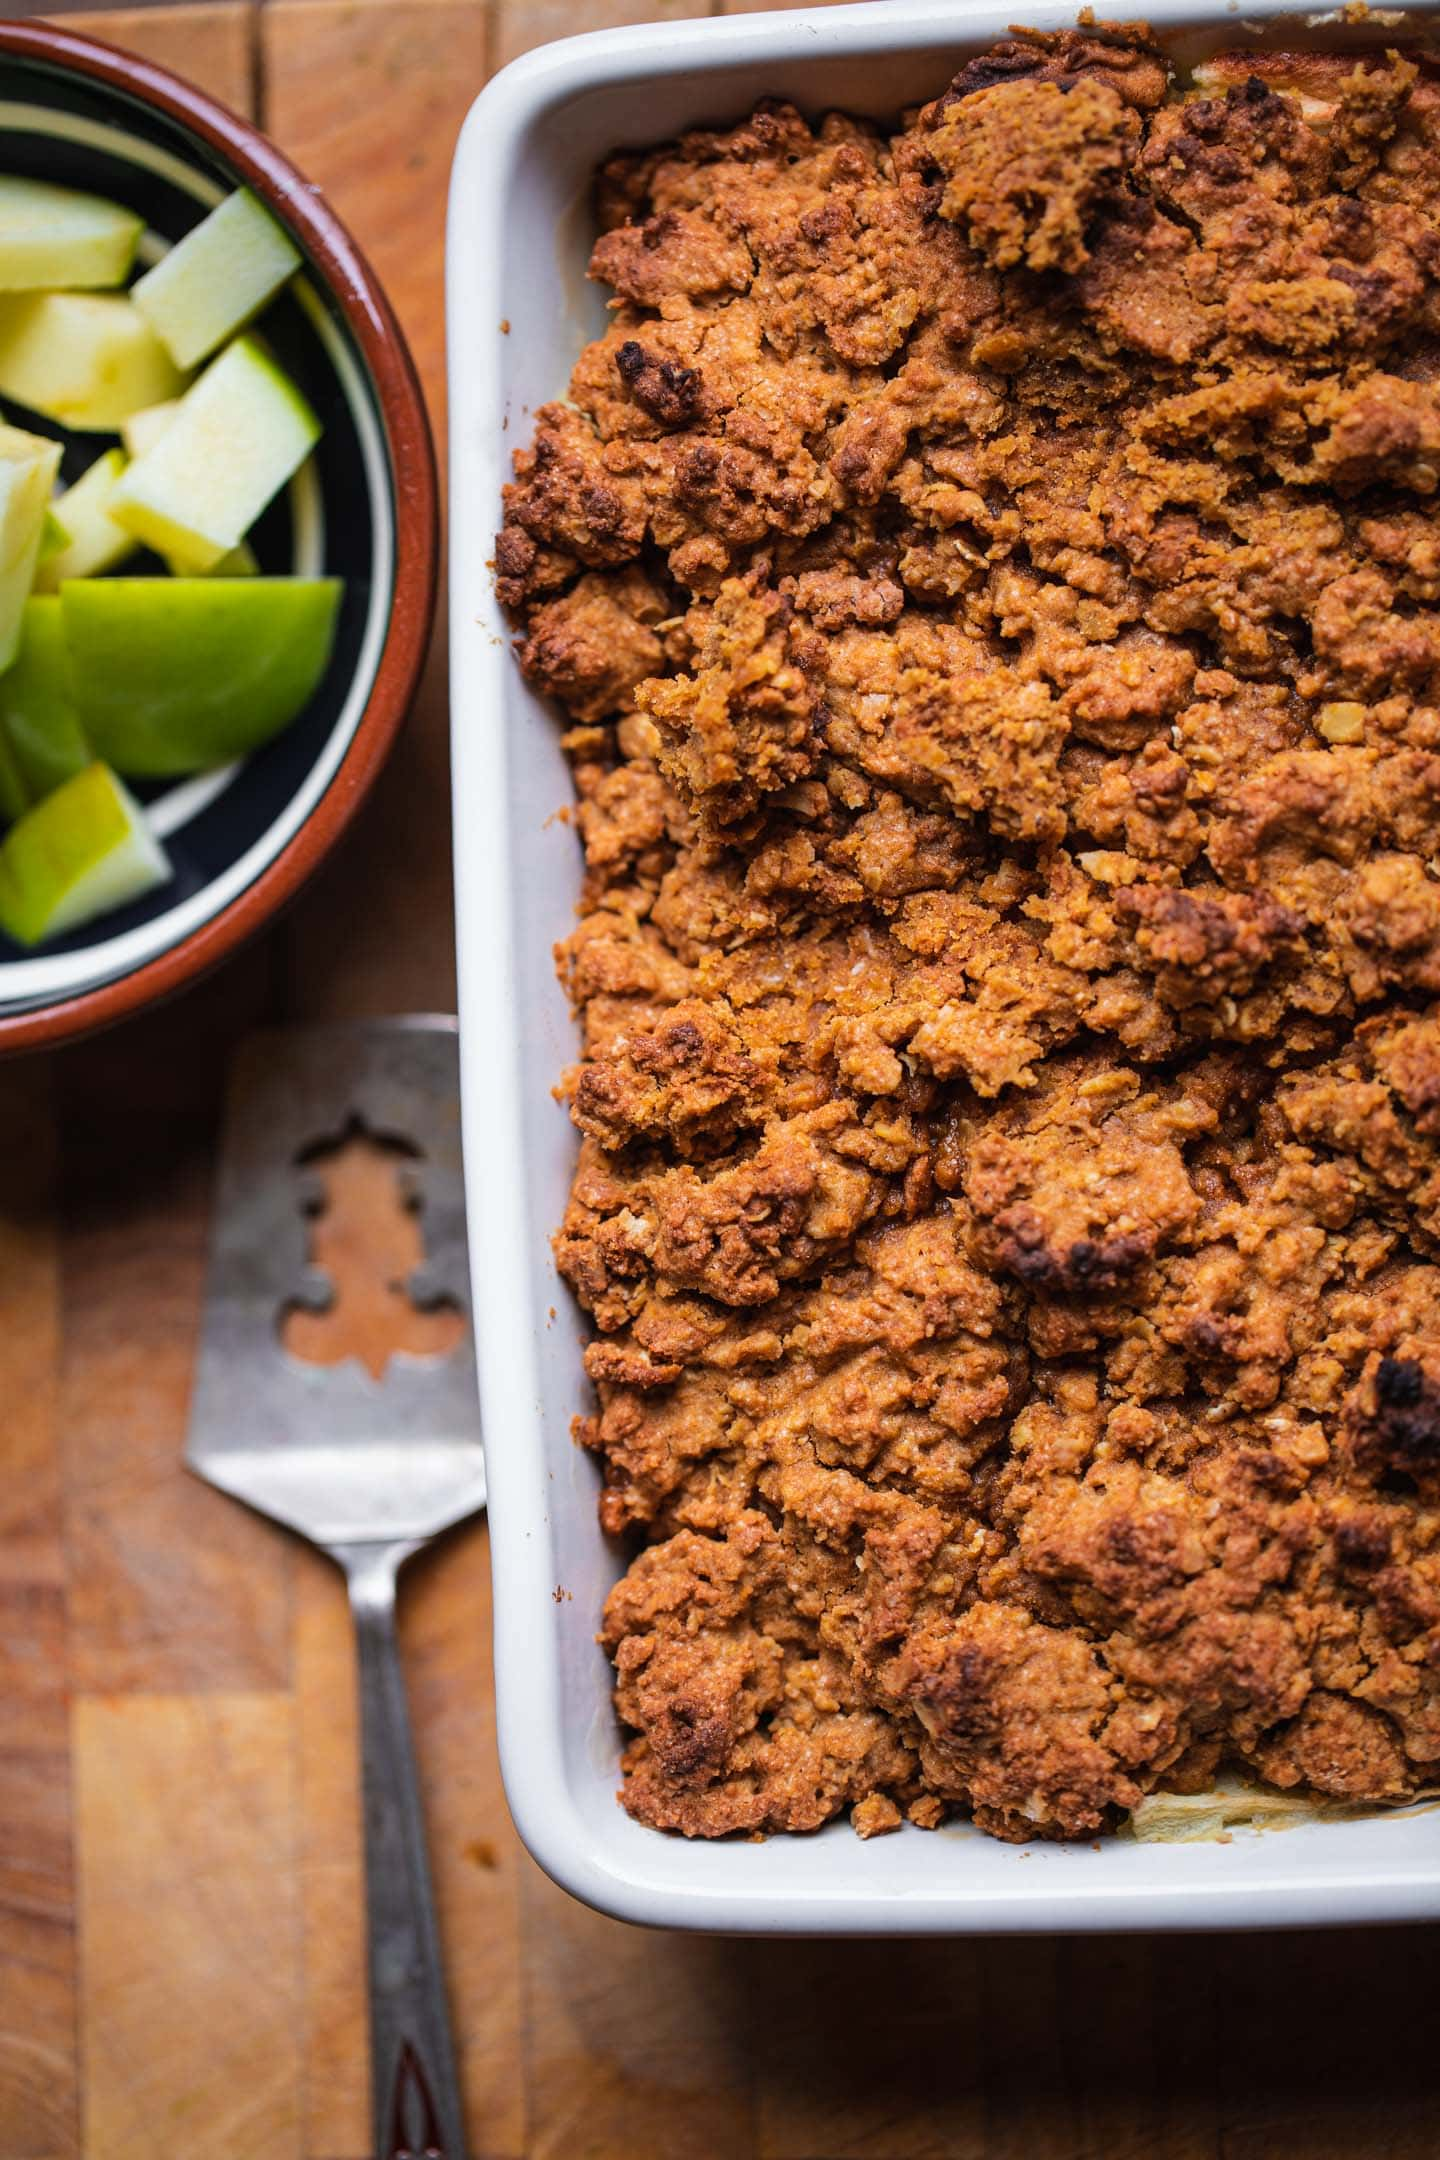 Vegan apple crisp on a wooden board with apples on the side